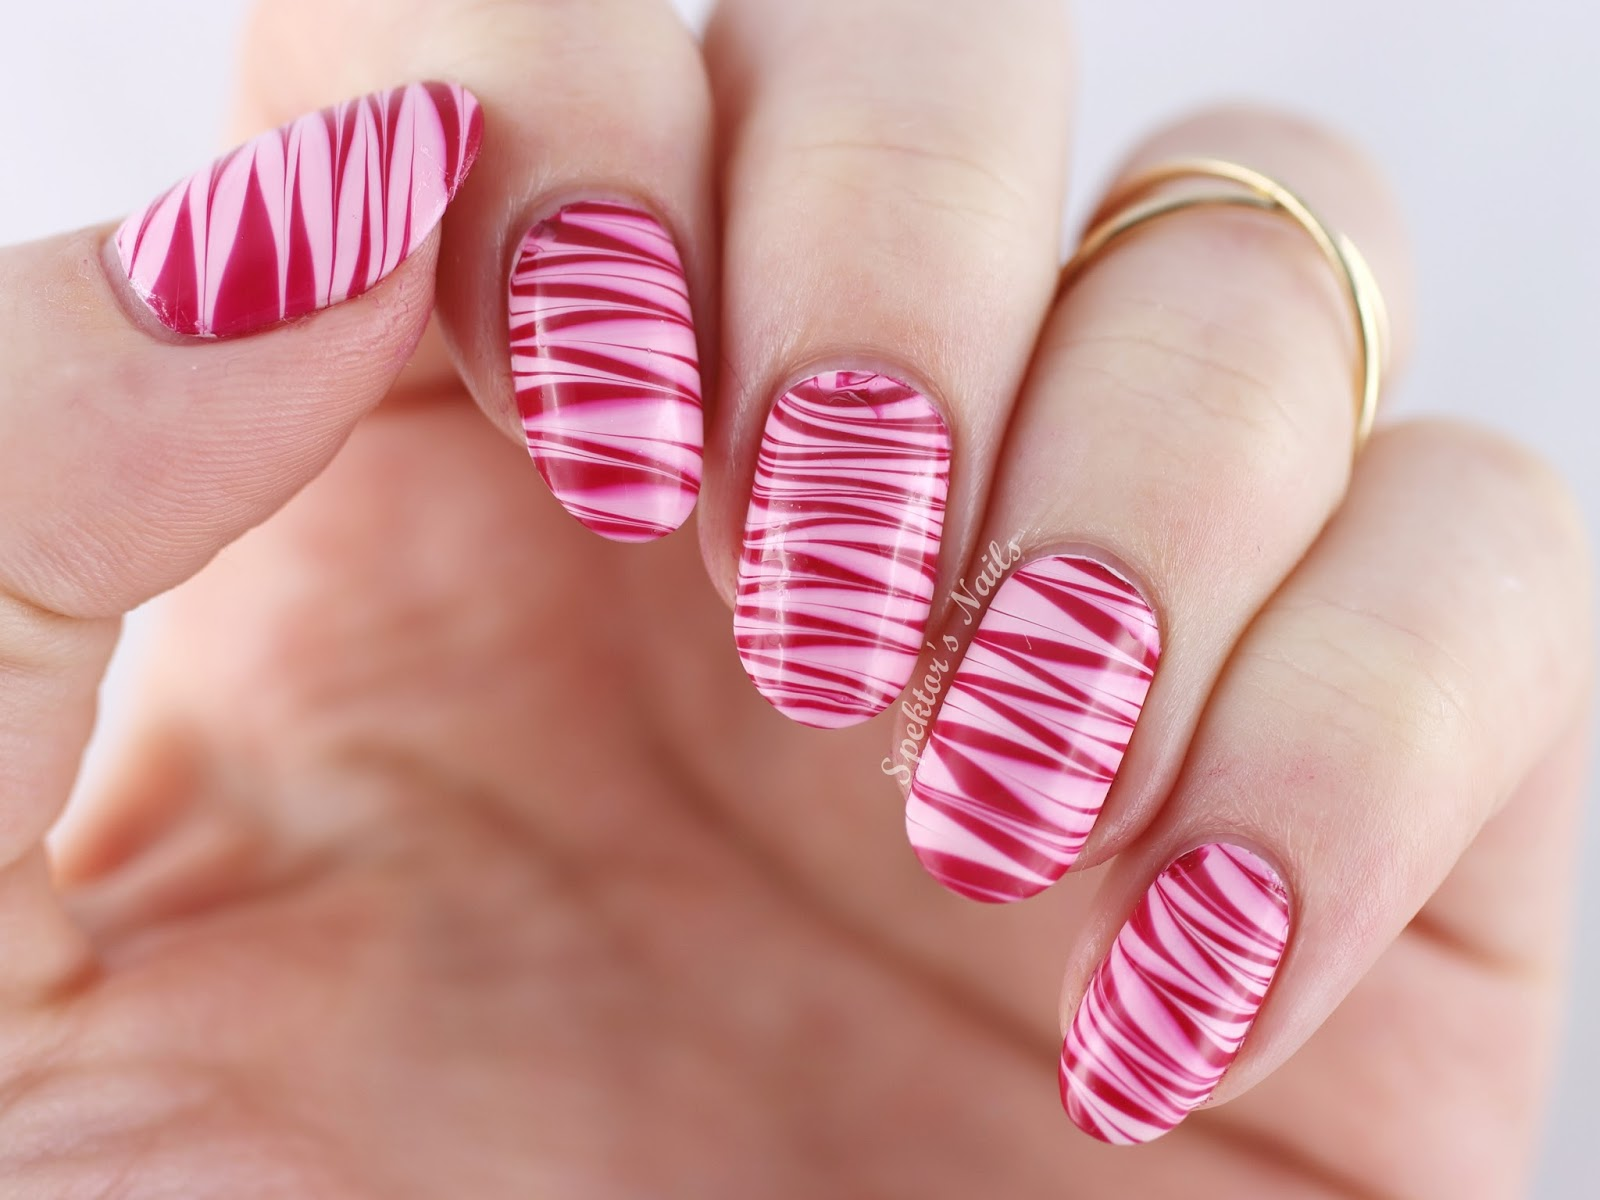 cane on nail